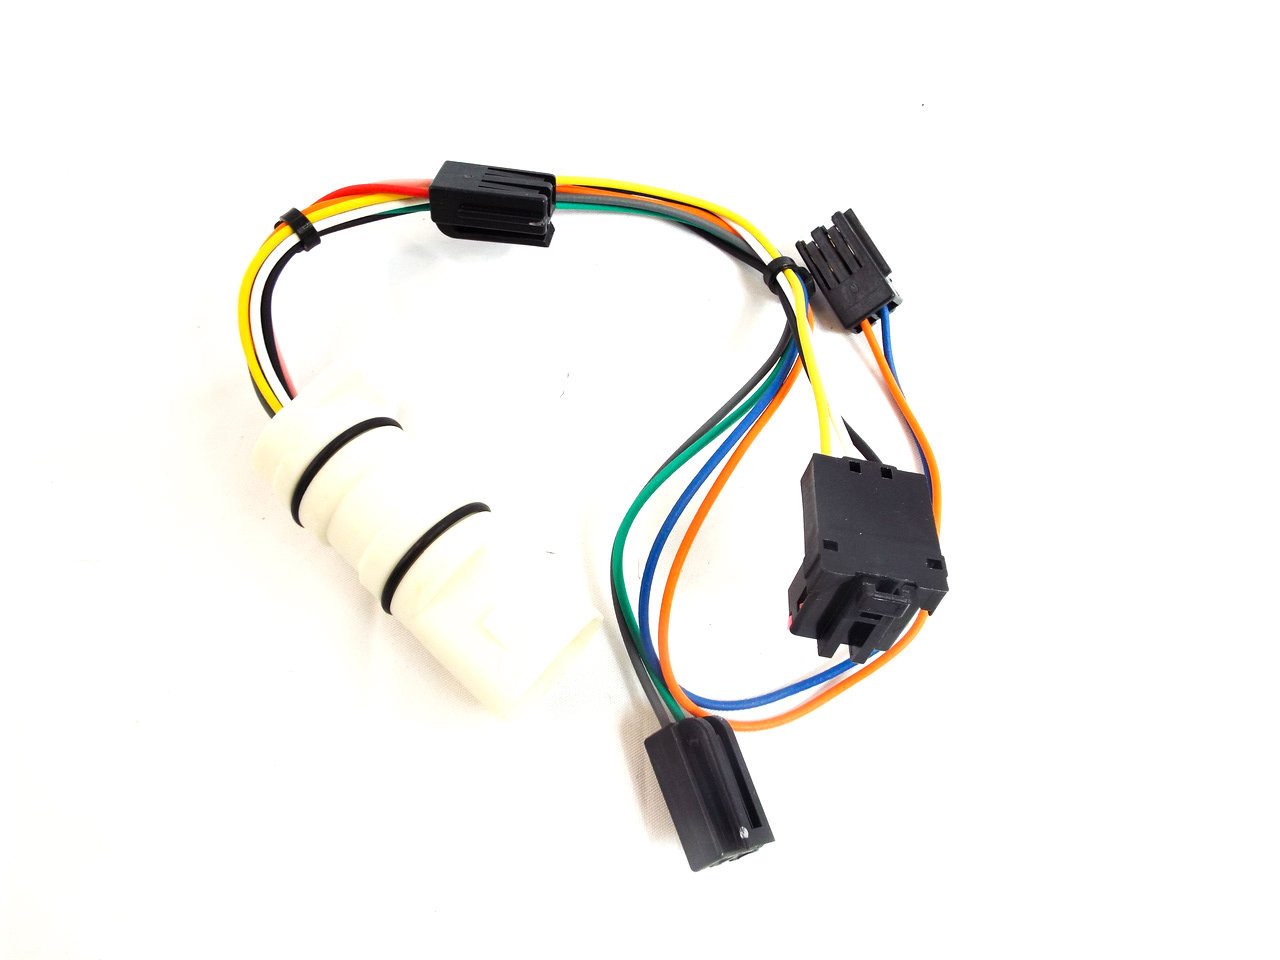 5r110 Wire Harness Wiring Library 4l80e Ford Aode 4r70w Internal W Case Connector F2vy 7g276 A Image 1